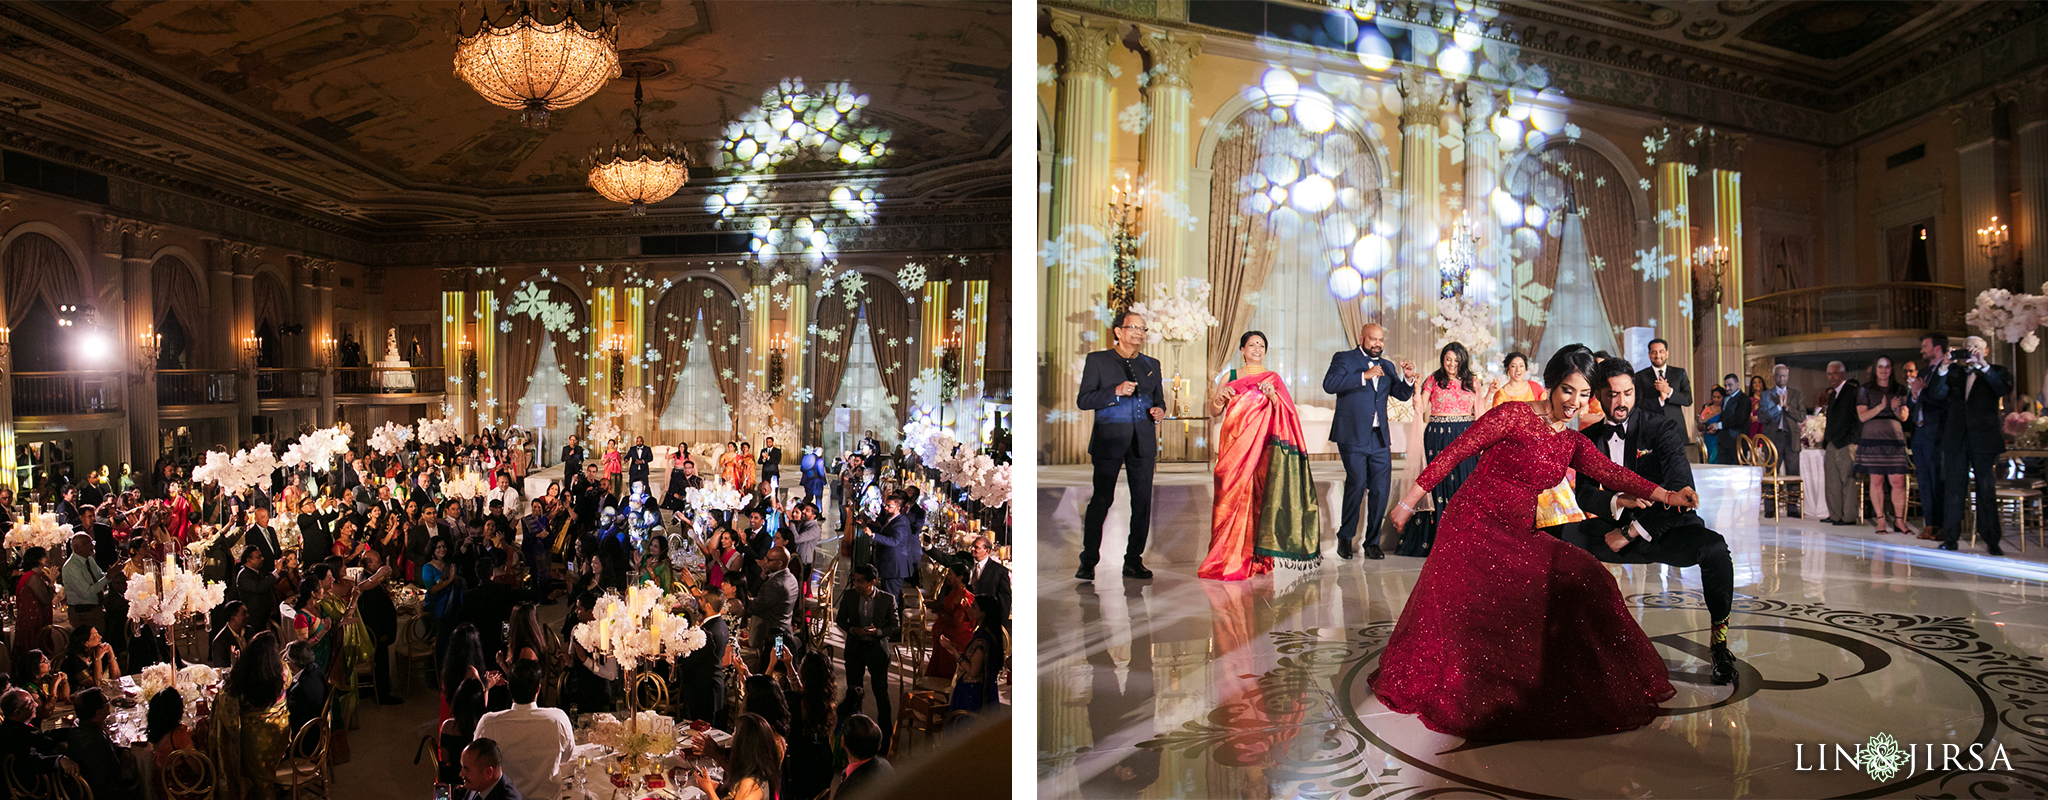 52 Millennium Biltmore Hotel Los Angeles Indian Wedding Reception Photography